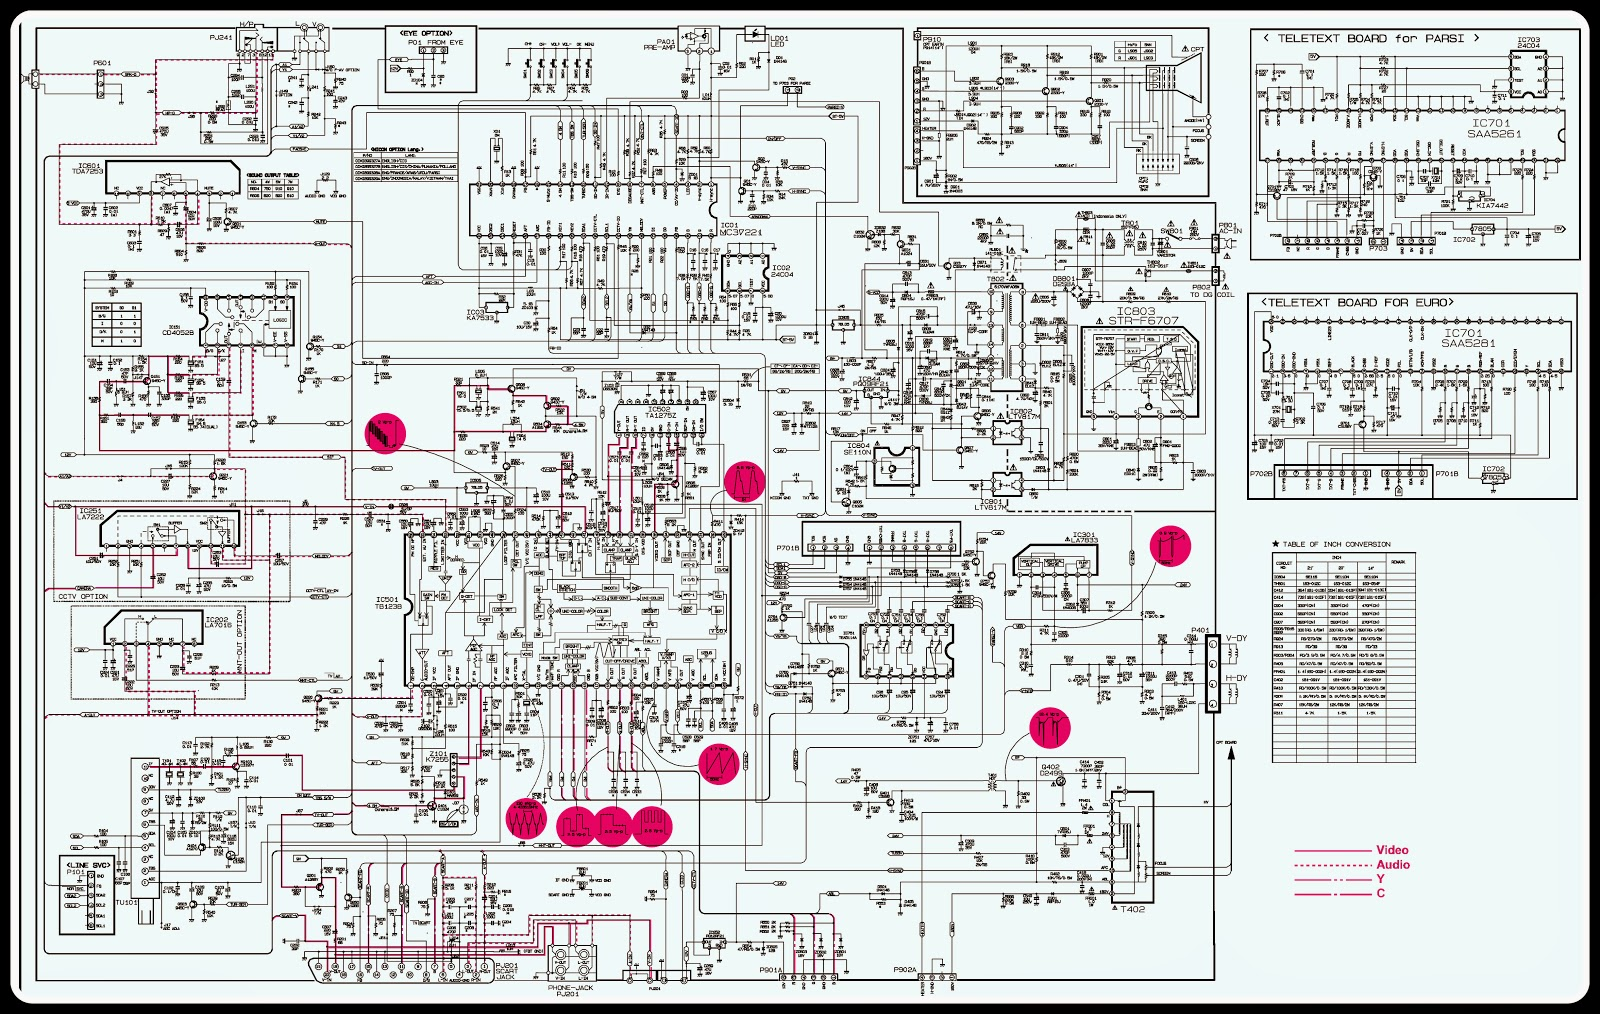 small resolution of led tv circuit diagram pdf wiring diagram post led tv circuit diagram pdf led tv circuit diagrams